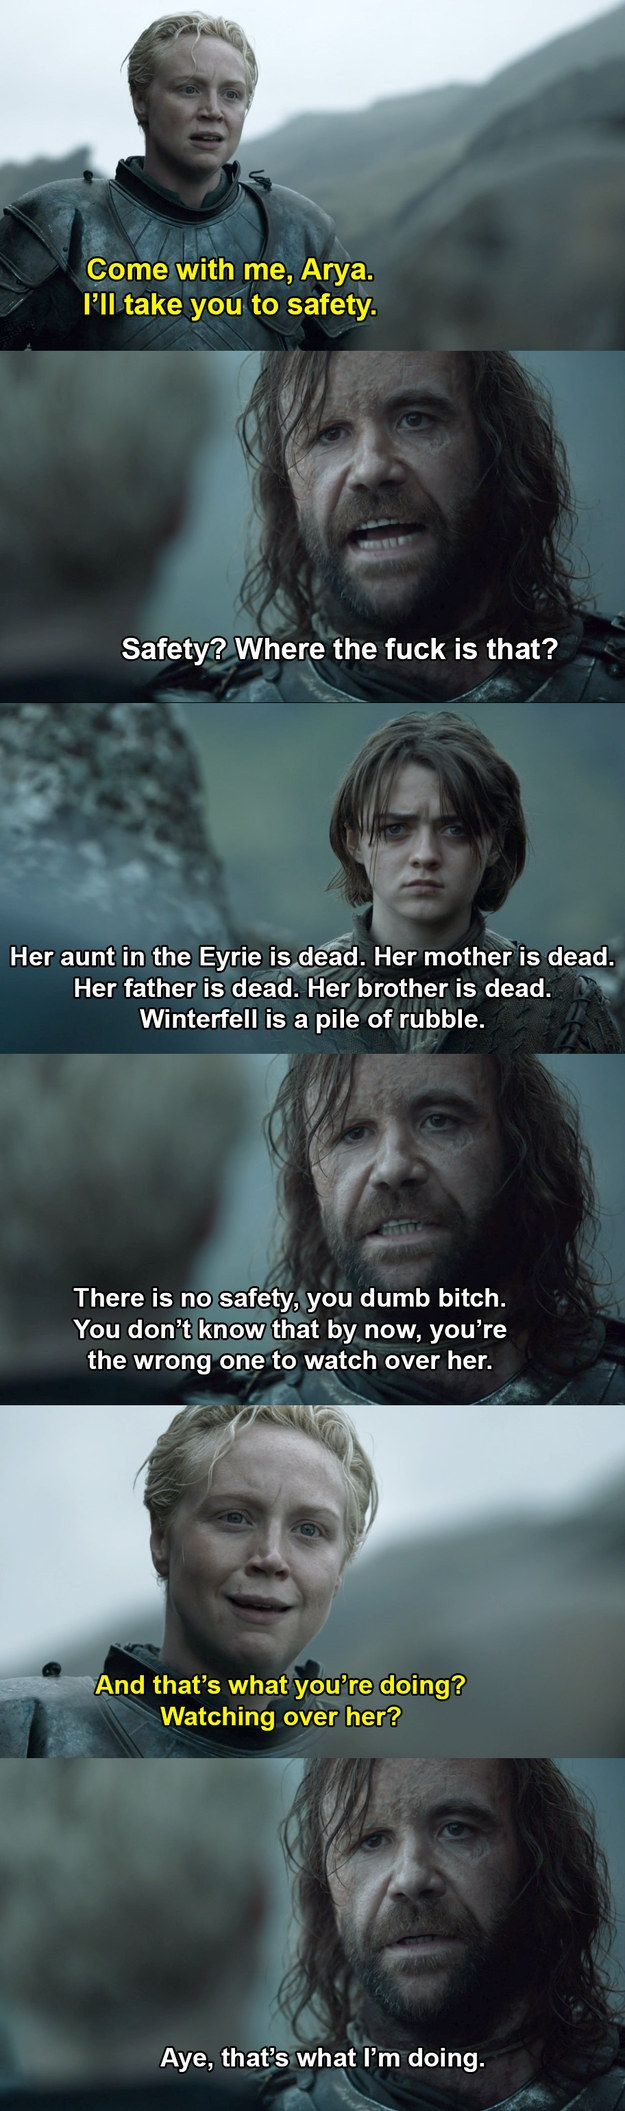 """Or he says something about Arya that makes you think there's a good person underneath that gruff exterior. 